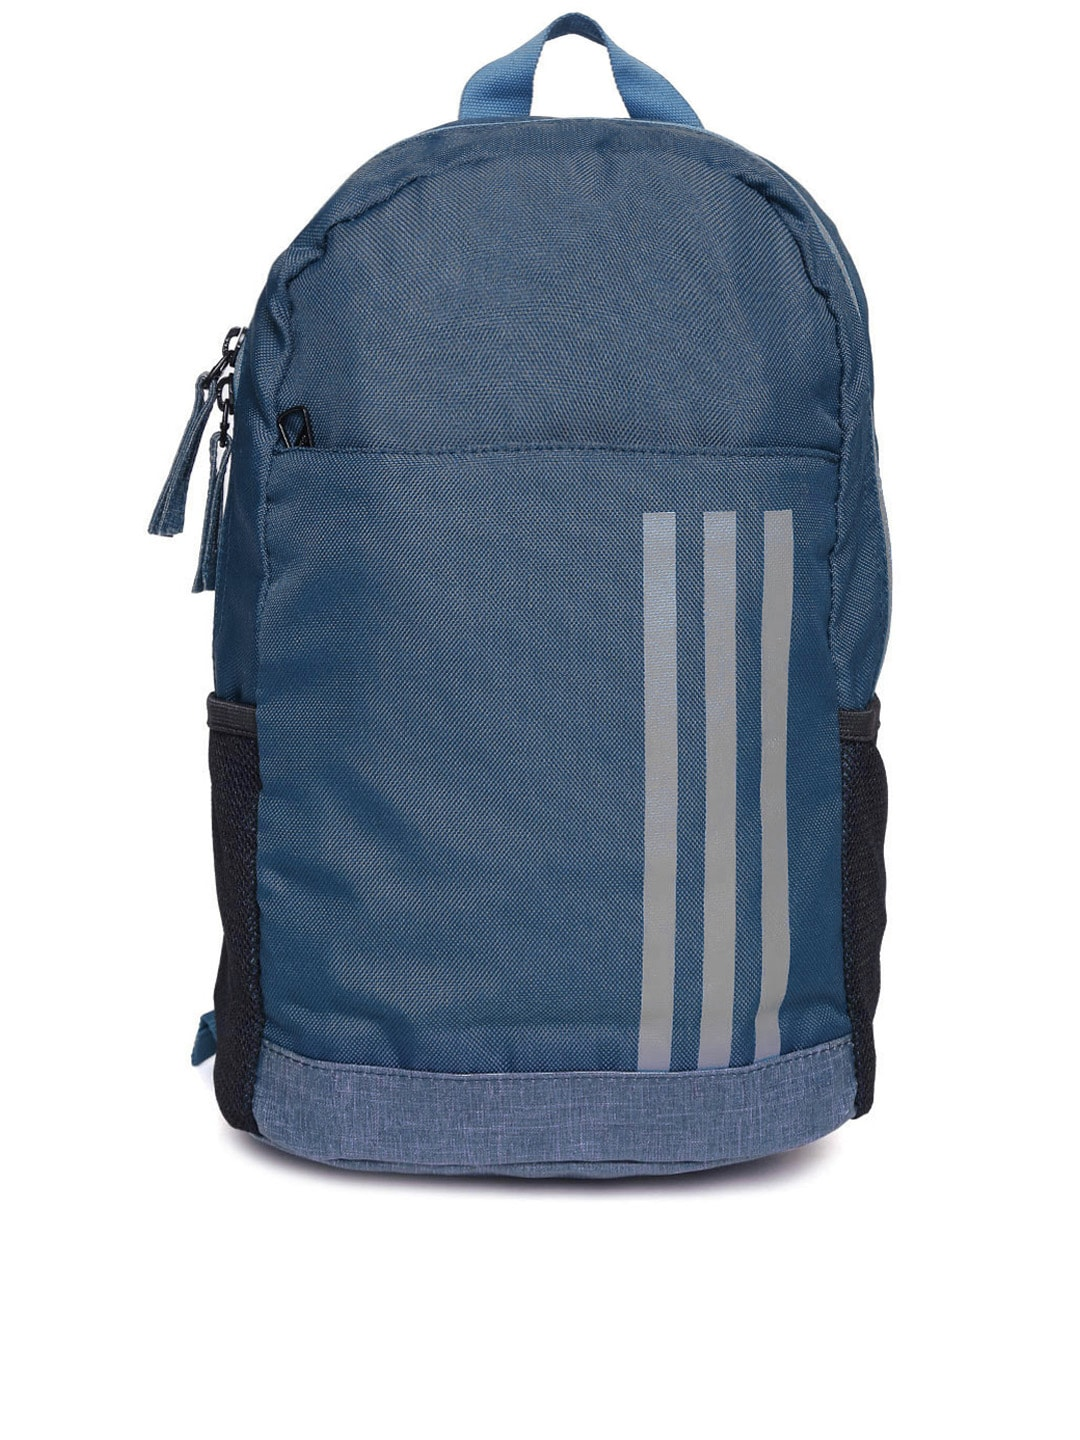 Buy adidas school bags price   OFF52% Discounted 6c1ced1c499fe